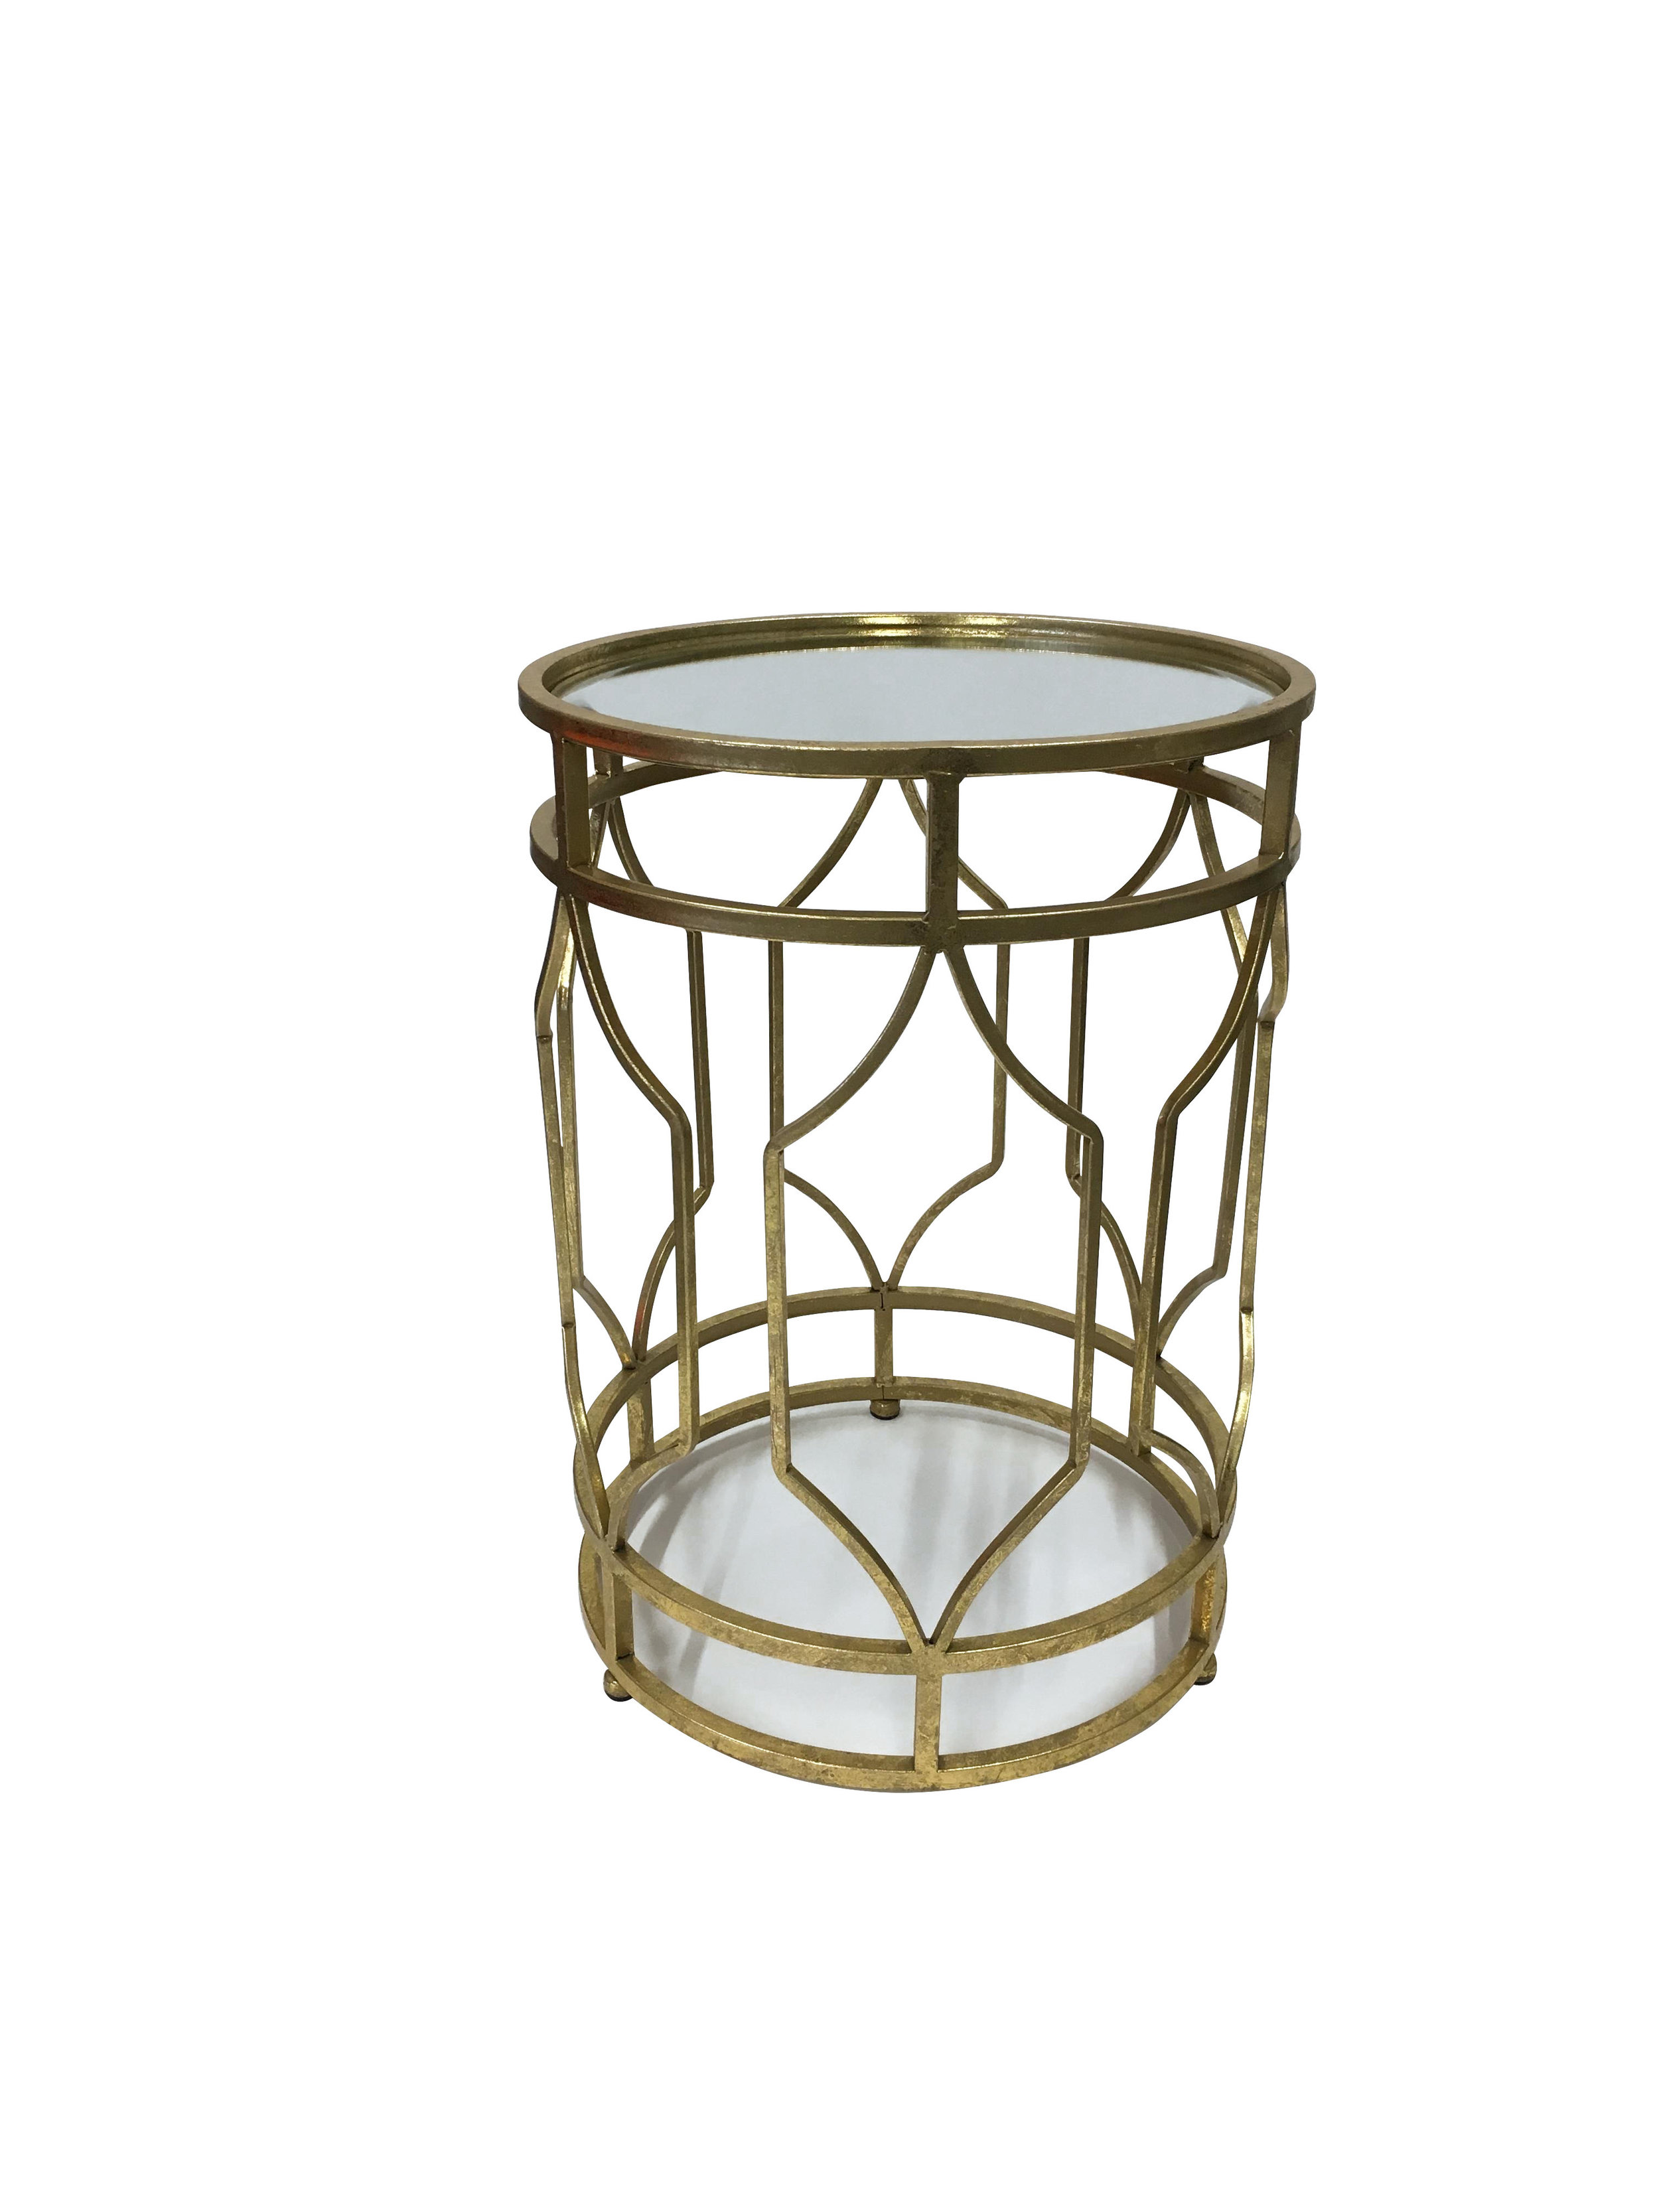 Gold Round Side Table with Mirrored Top1.jpg